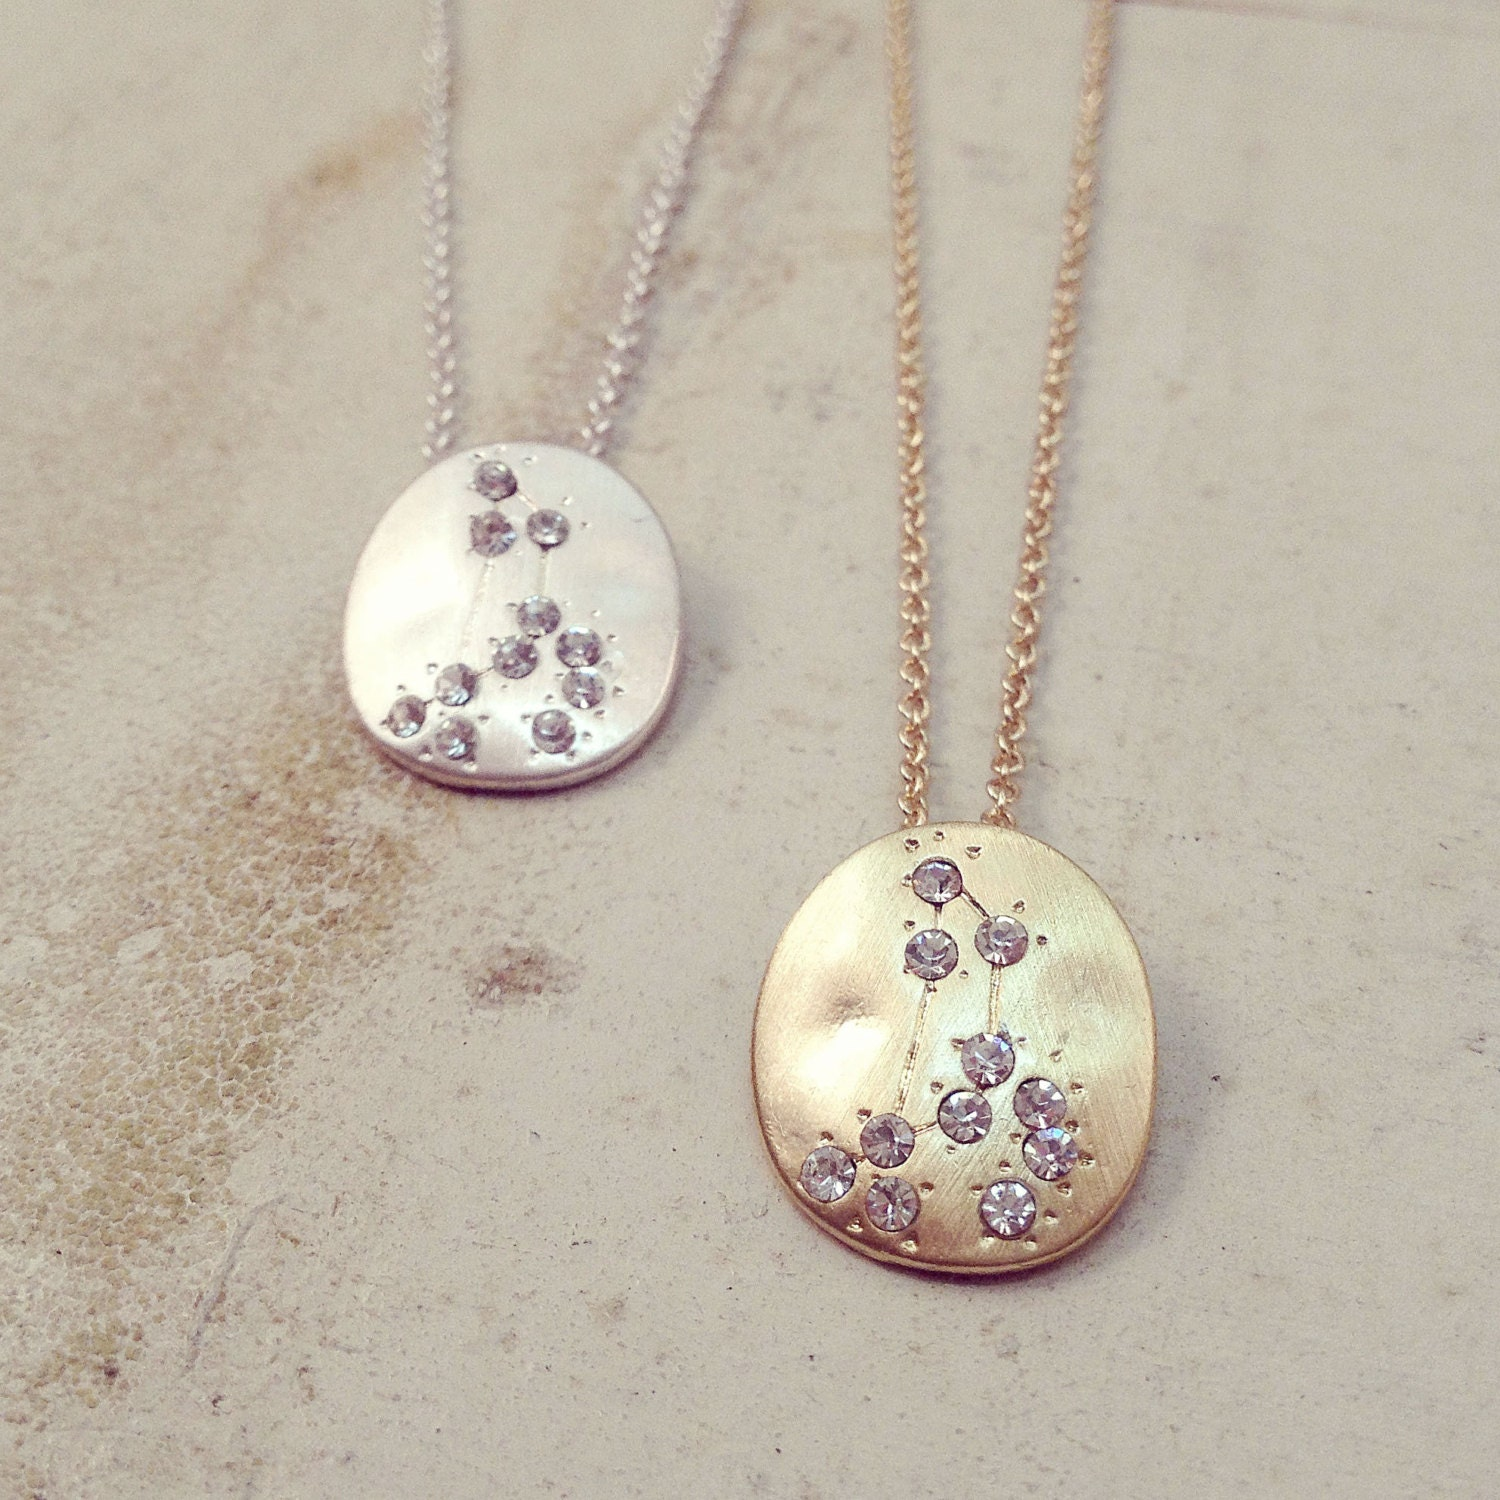 Hand Made LEO Zodiac Sign Constellation Necklace SILVER or